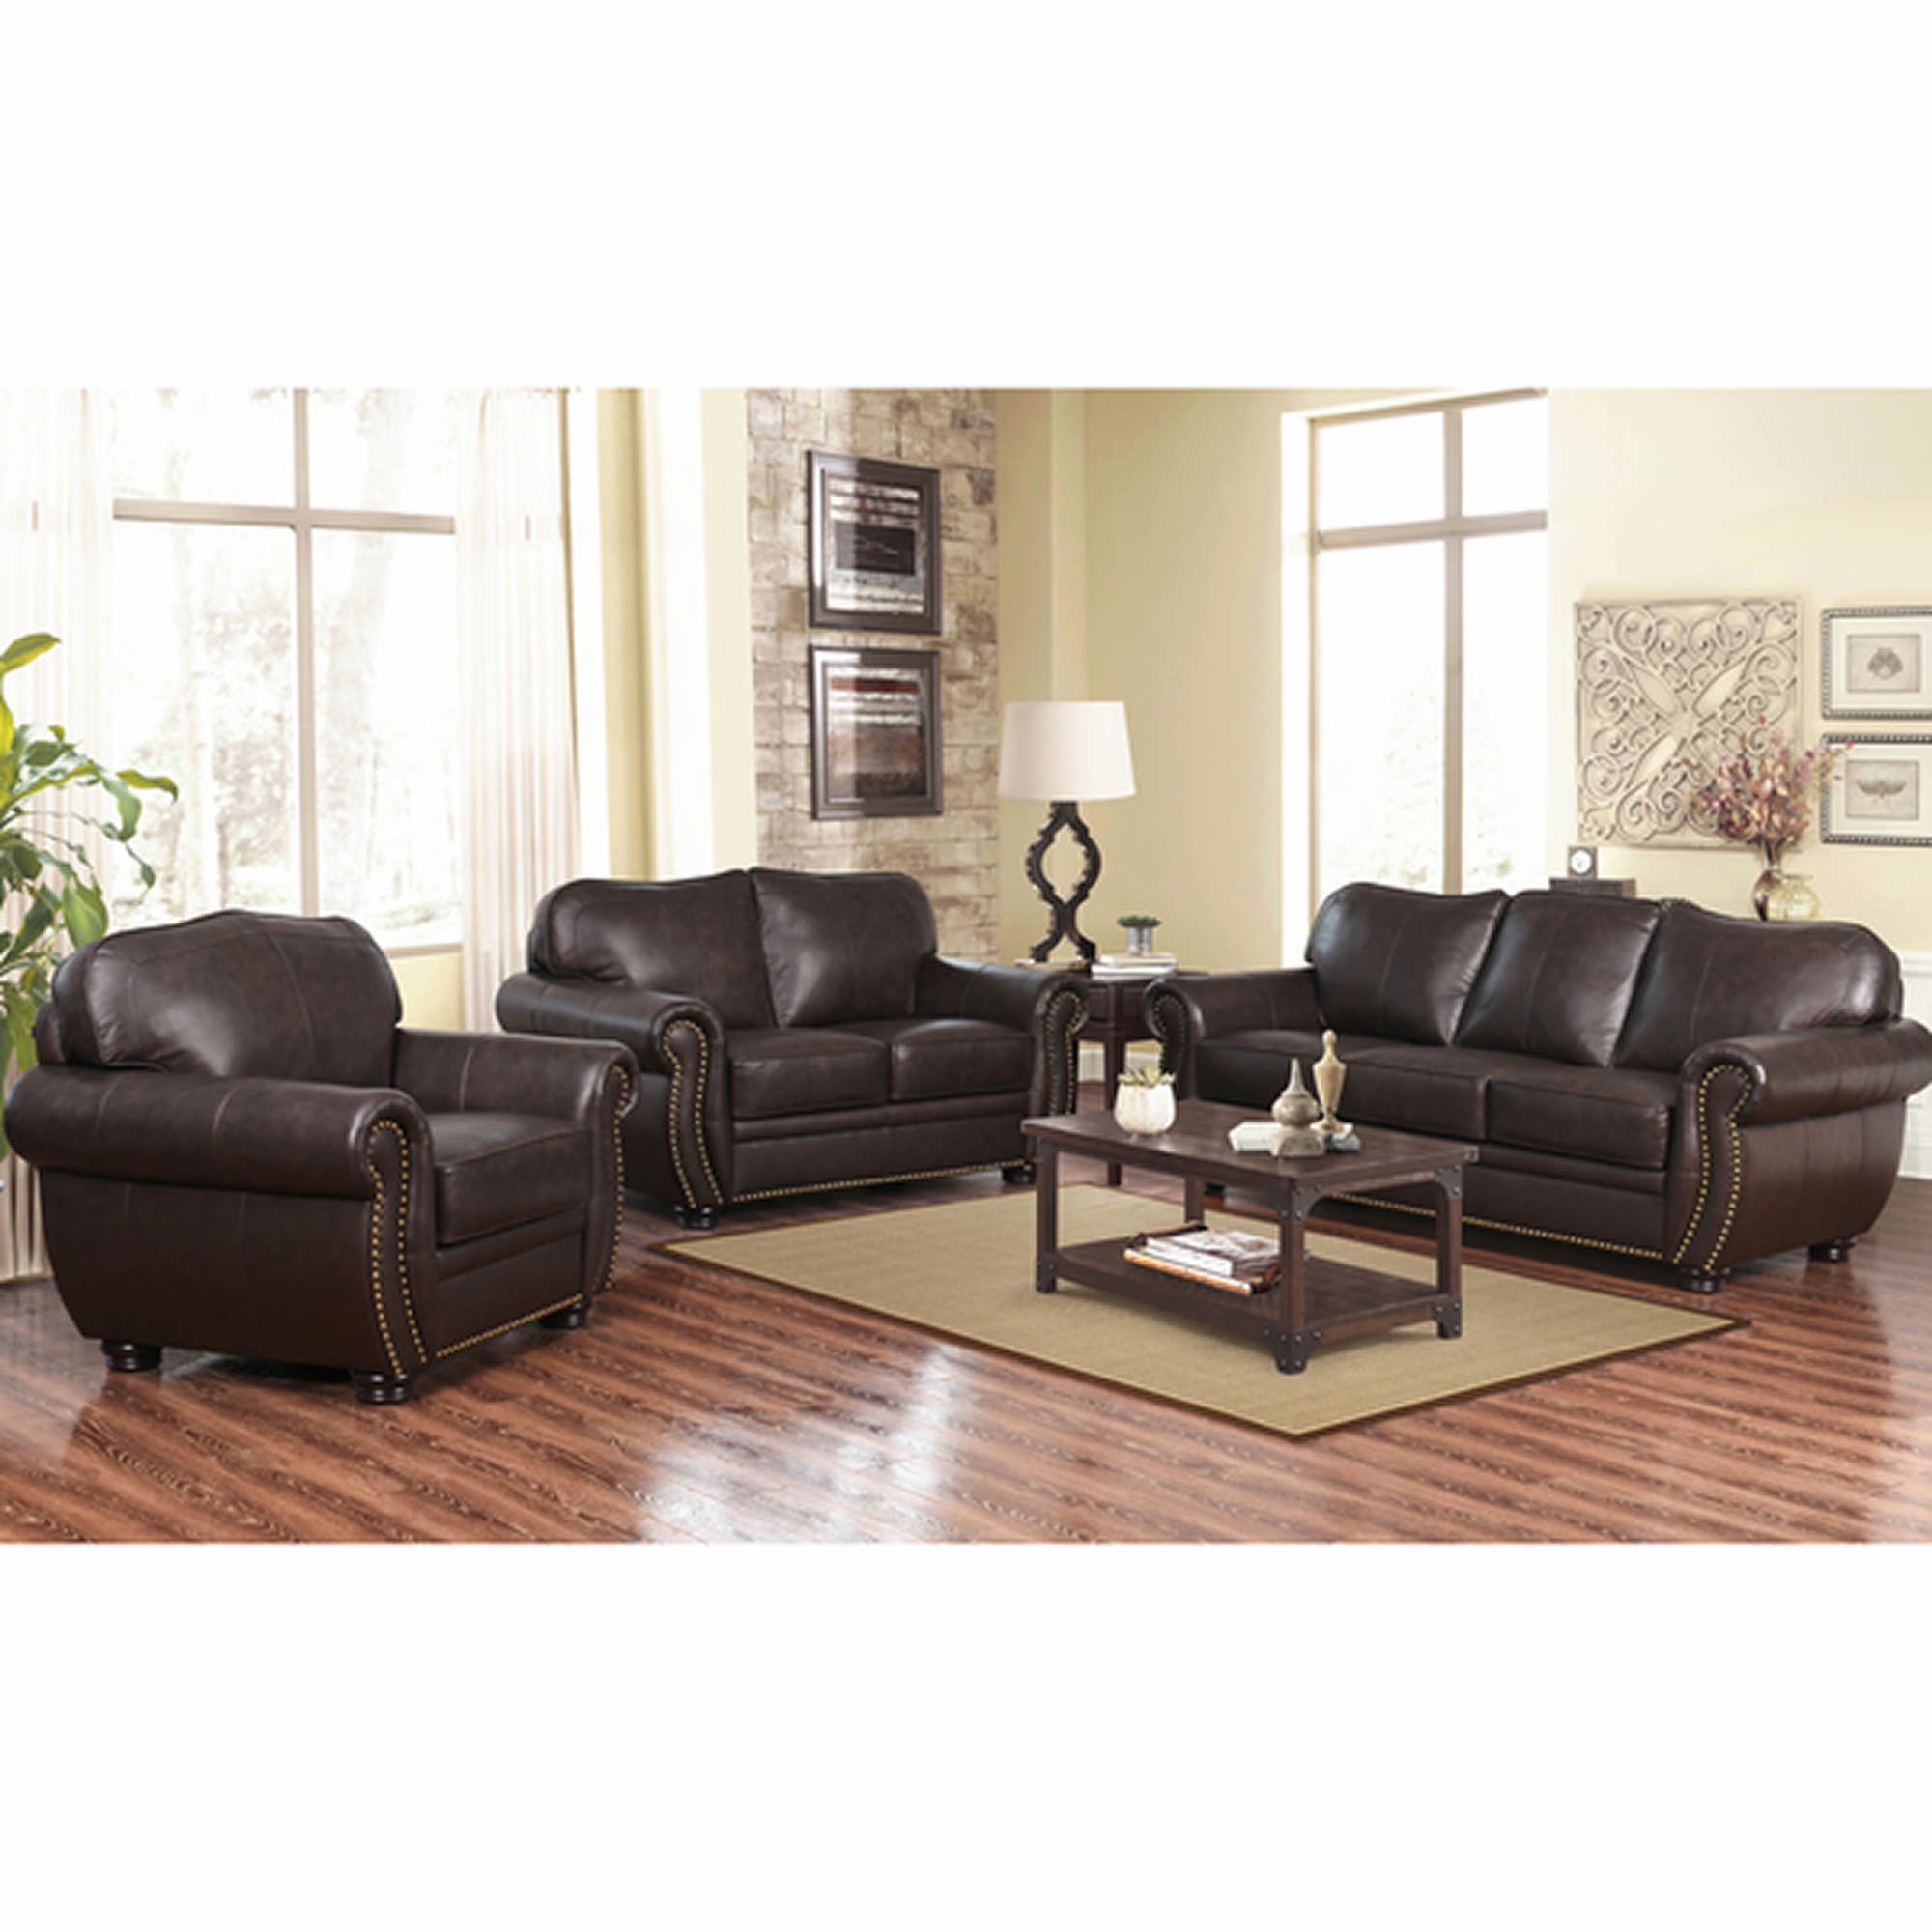 Abbyson living barrington 3 pc top grain leather living for Brown couch set